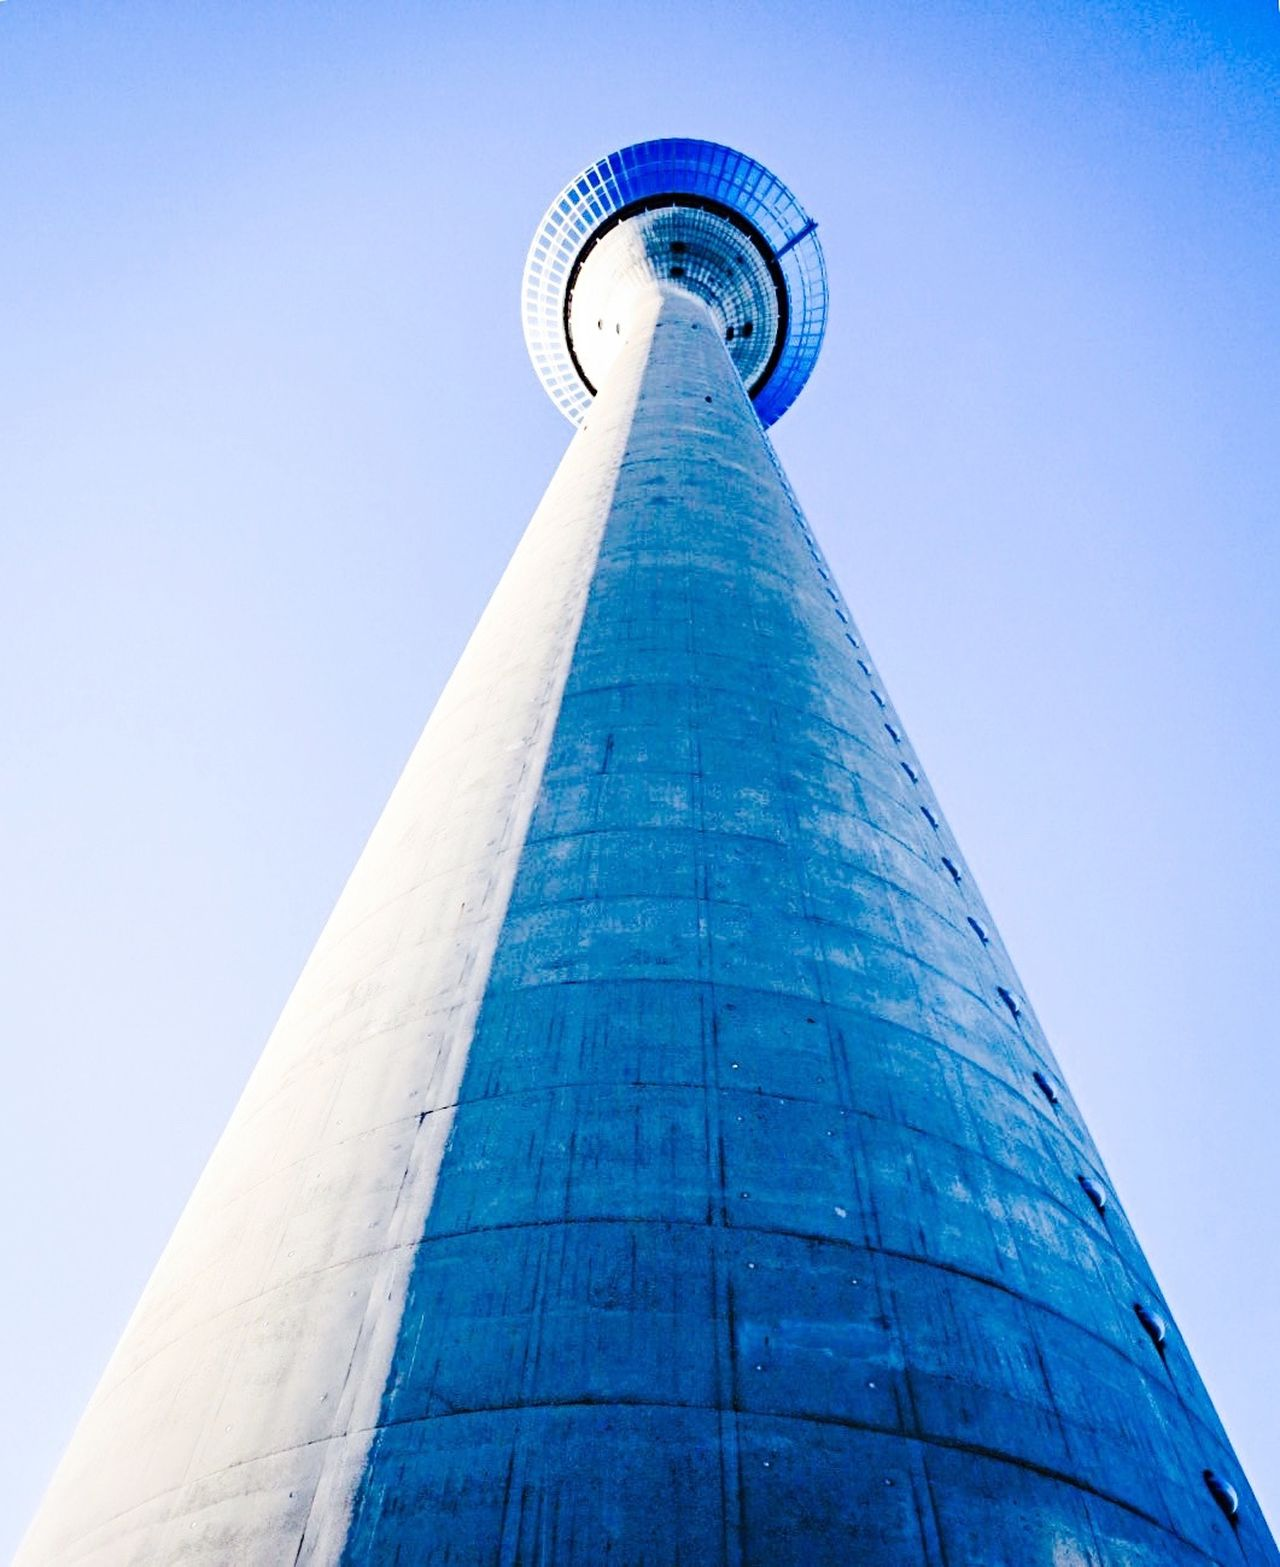 TV Tower Television Tower Built Structure Modern Tower Blue Sky Blue Building Exterior Day Travel Architecture City Sky Outdoors Tourism Germany Adapted To The City